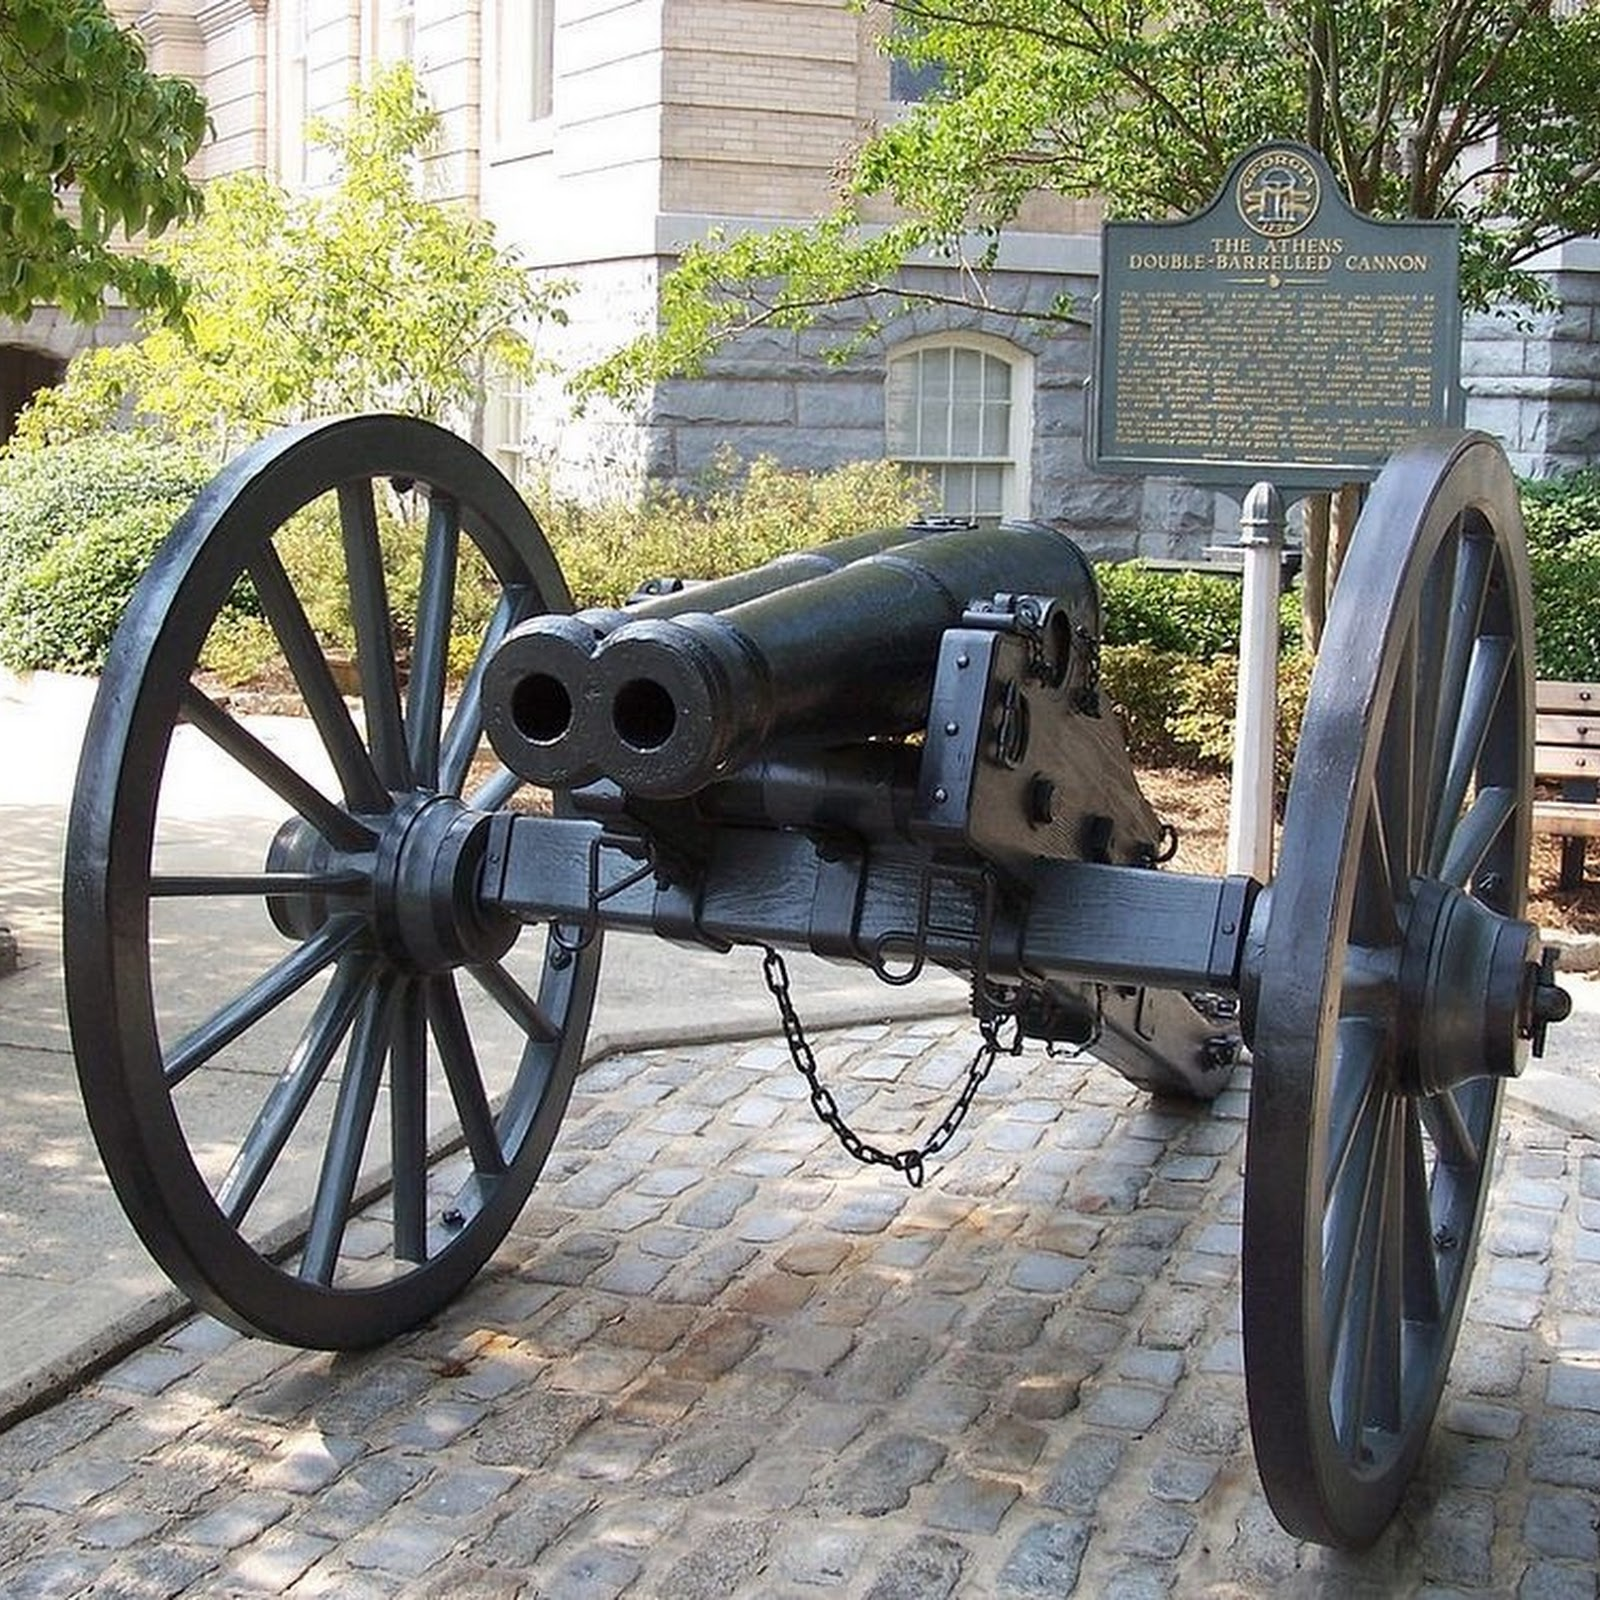 The Double-Barreled Cannon of Athens